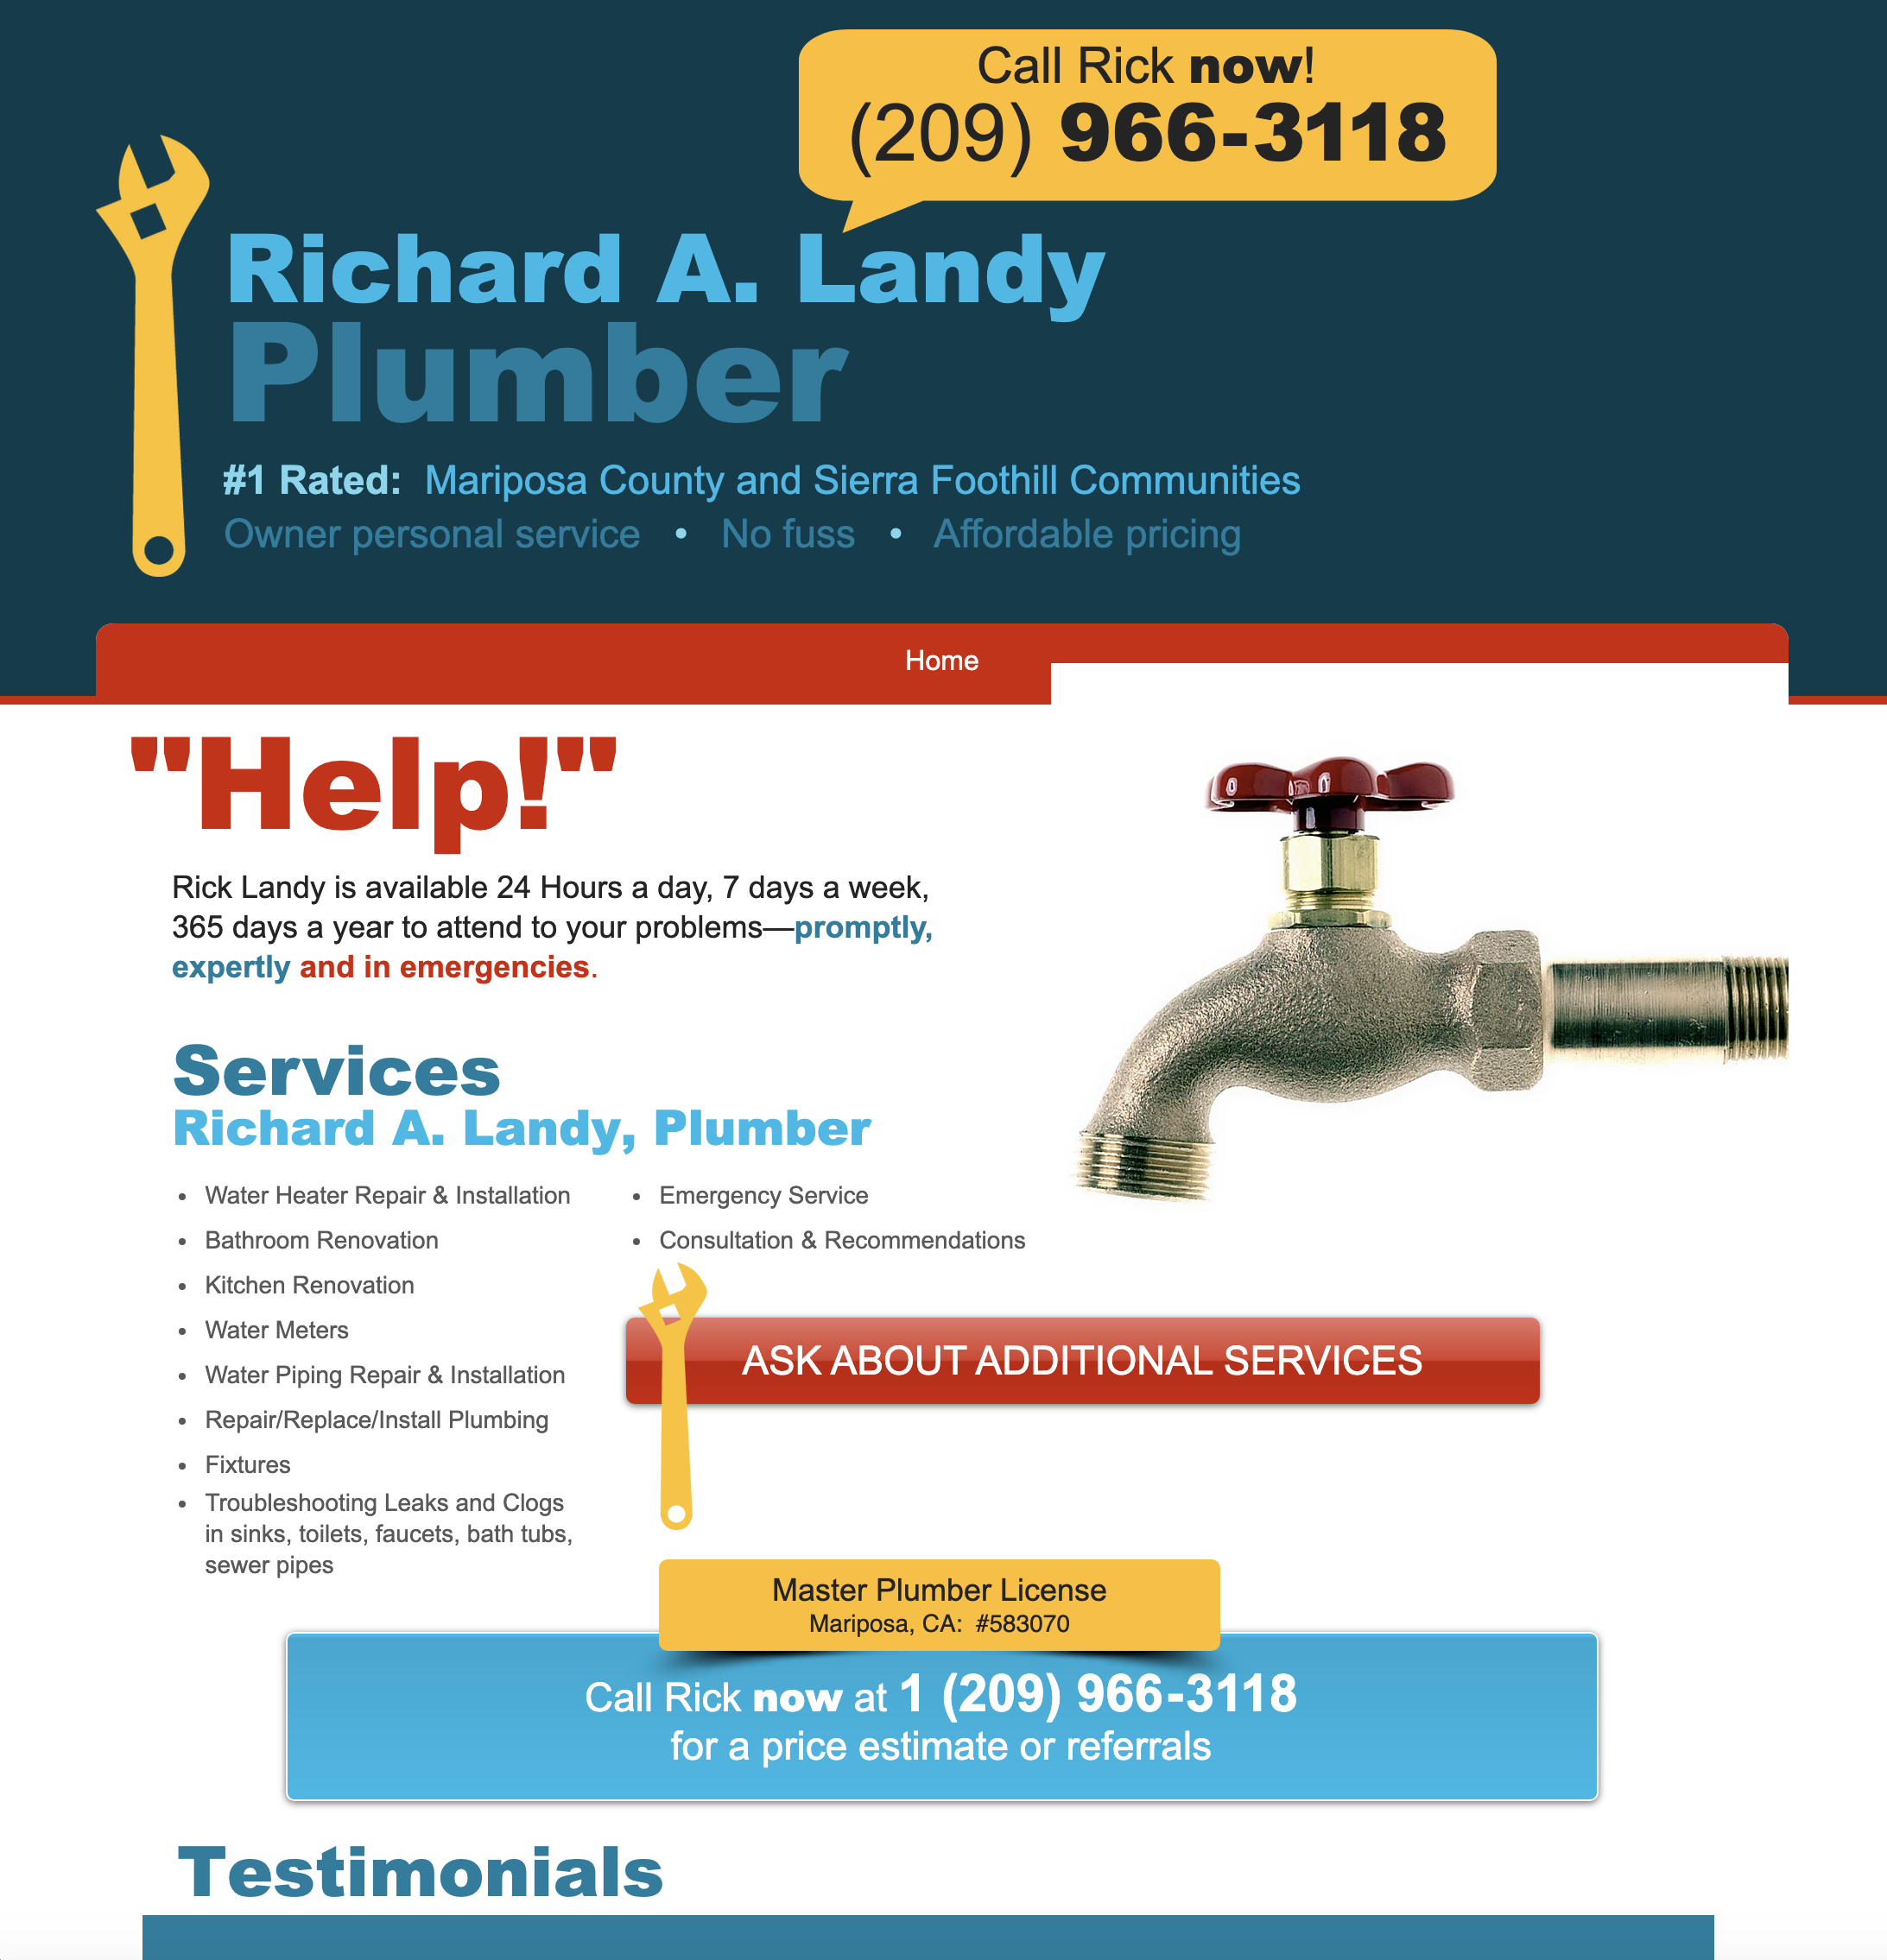 Richard A. Landy, Plumber